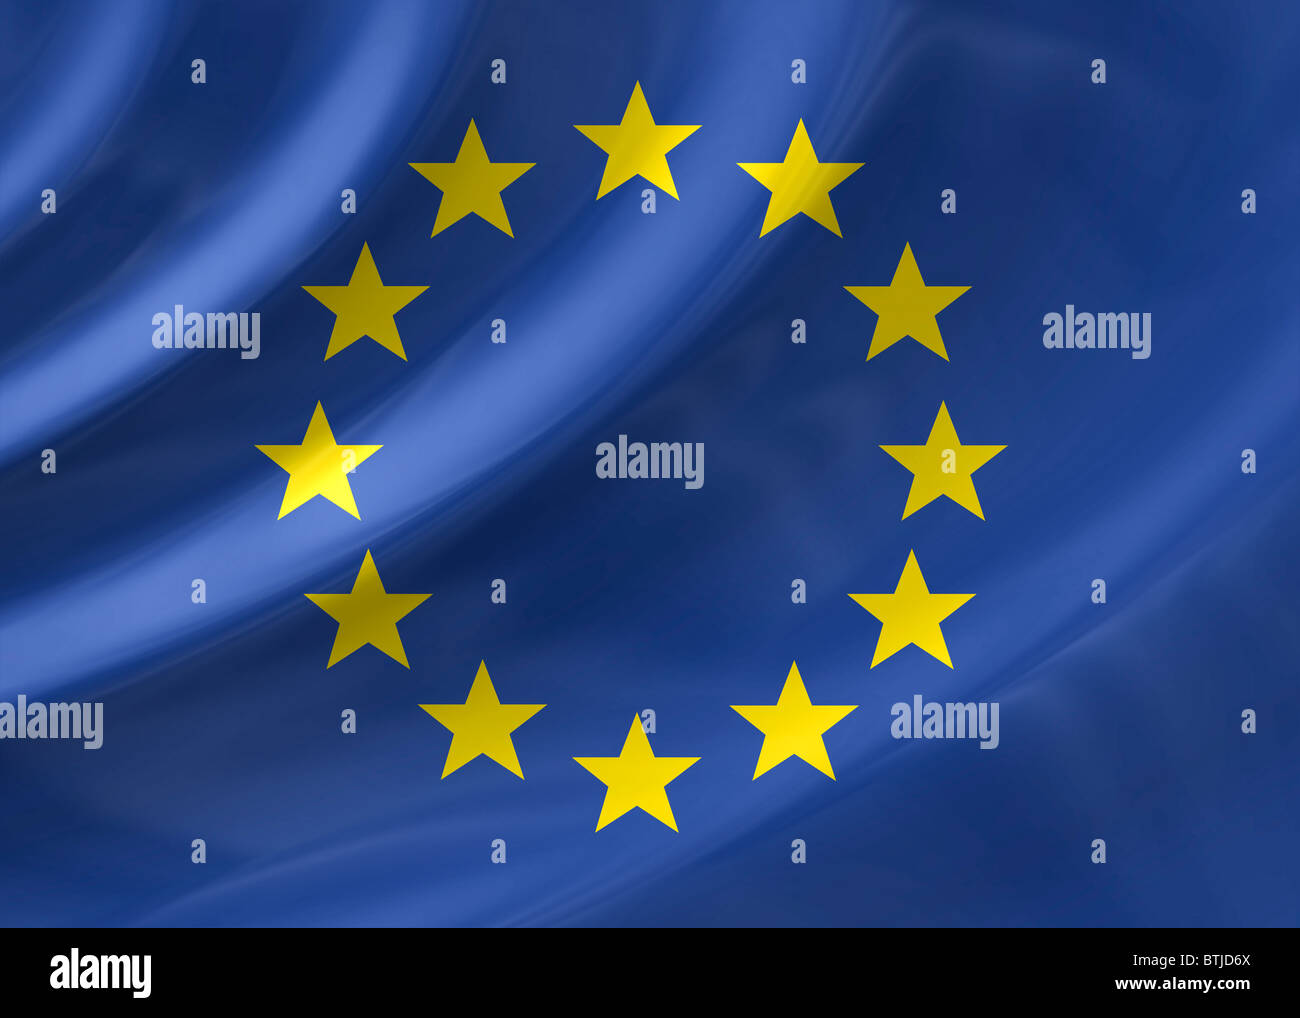 European Union flag - Stock Image